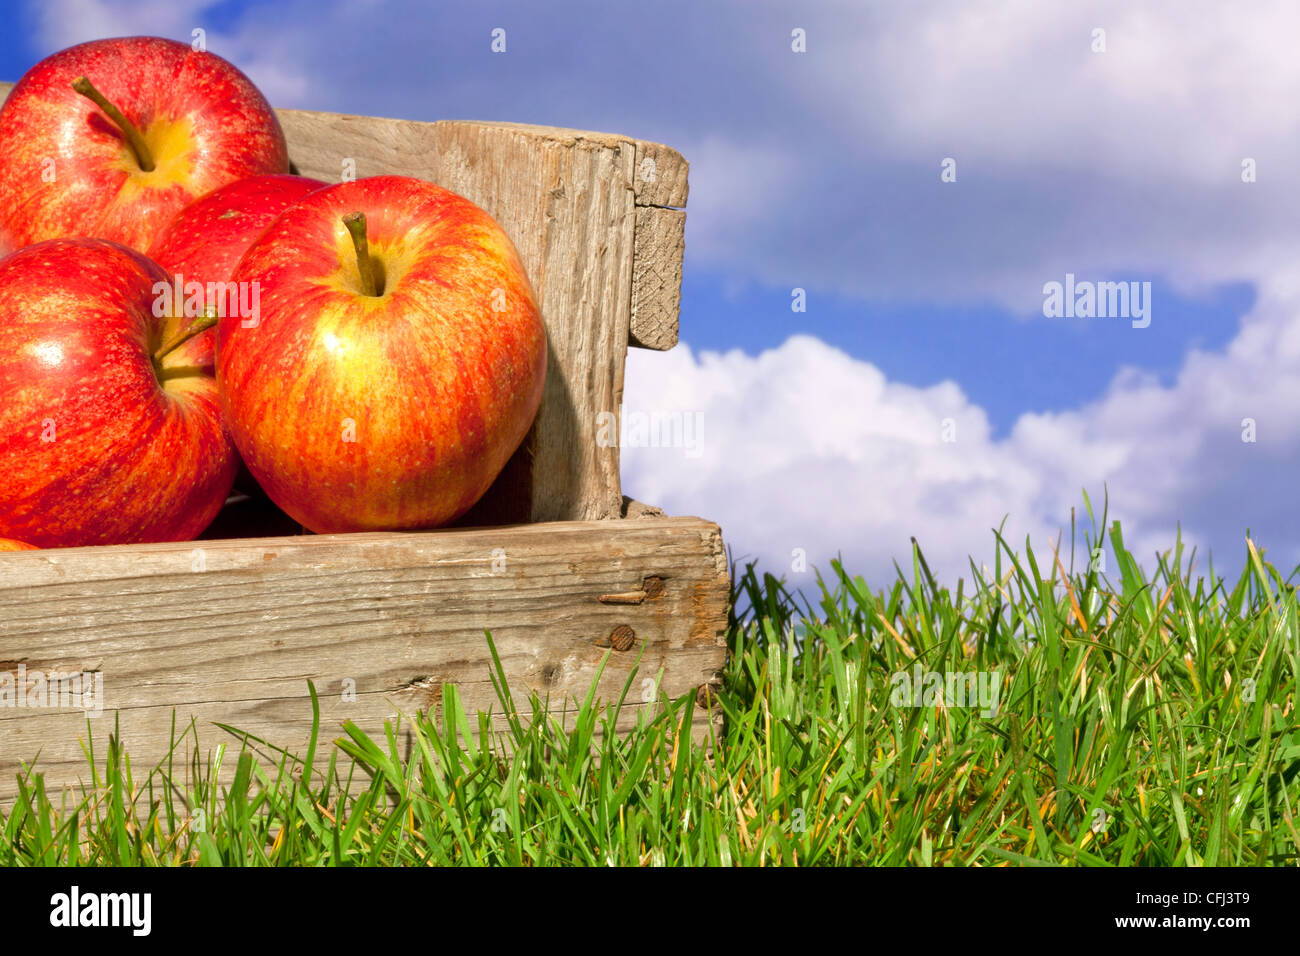 Still life photo of freshly picked red apples in a wooden crate on grass against a blue cloudy sky. Stock Photo